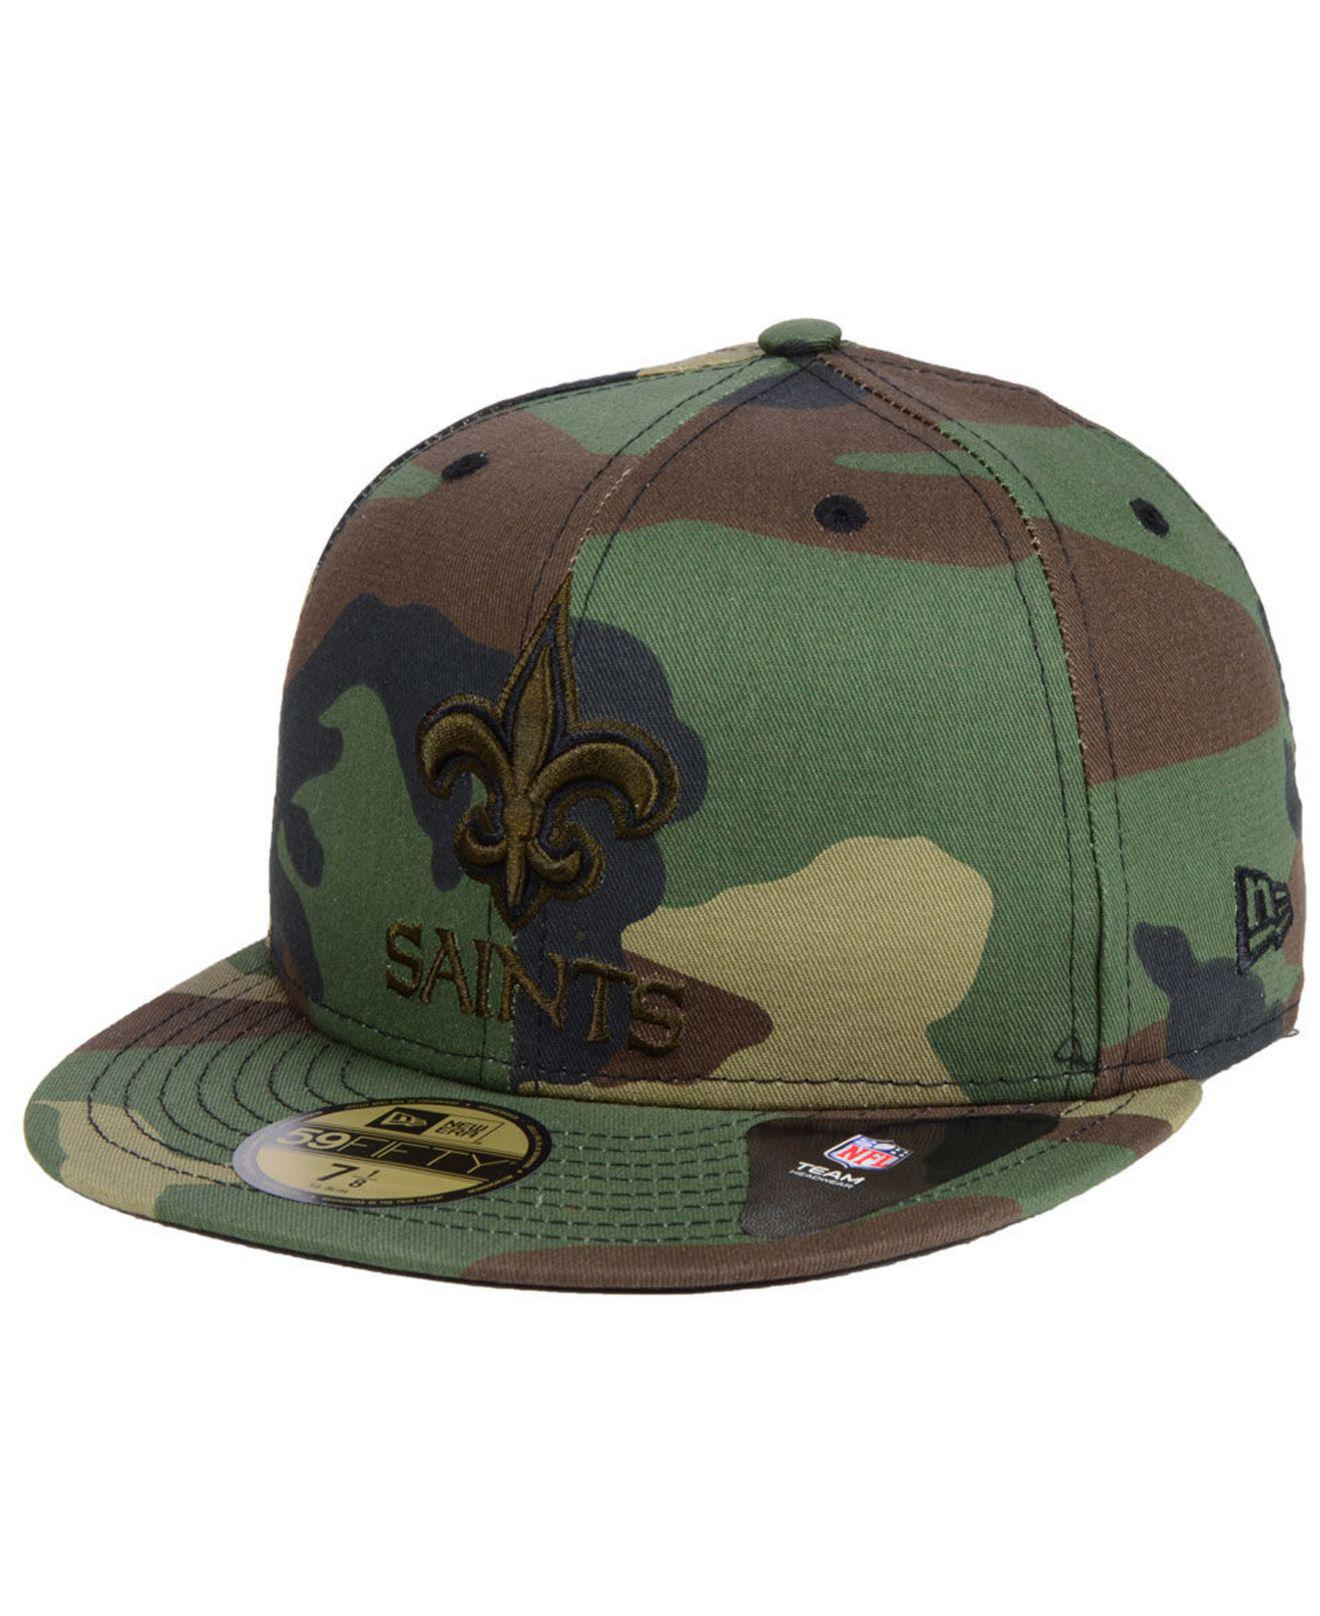 hot sale online 2fcd6 6f234 KTZ New Orleans Saints Woodland Prism Pack 59fifty-fitted Cap in ...